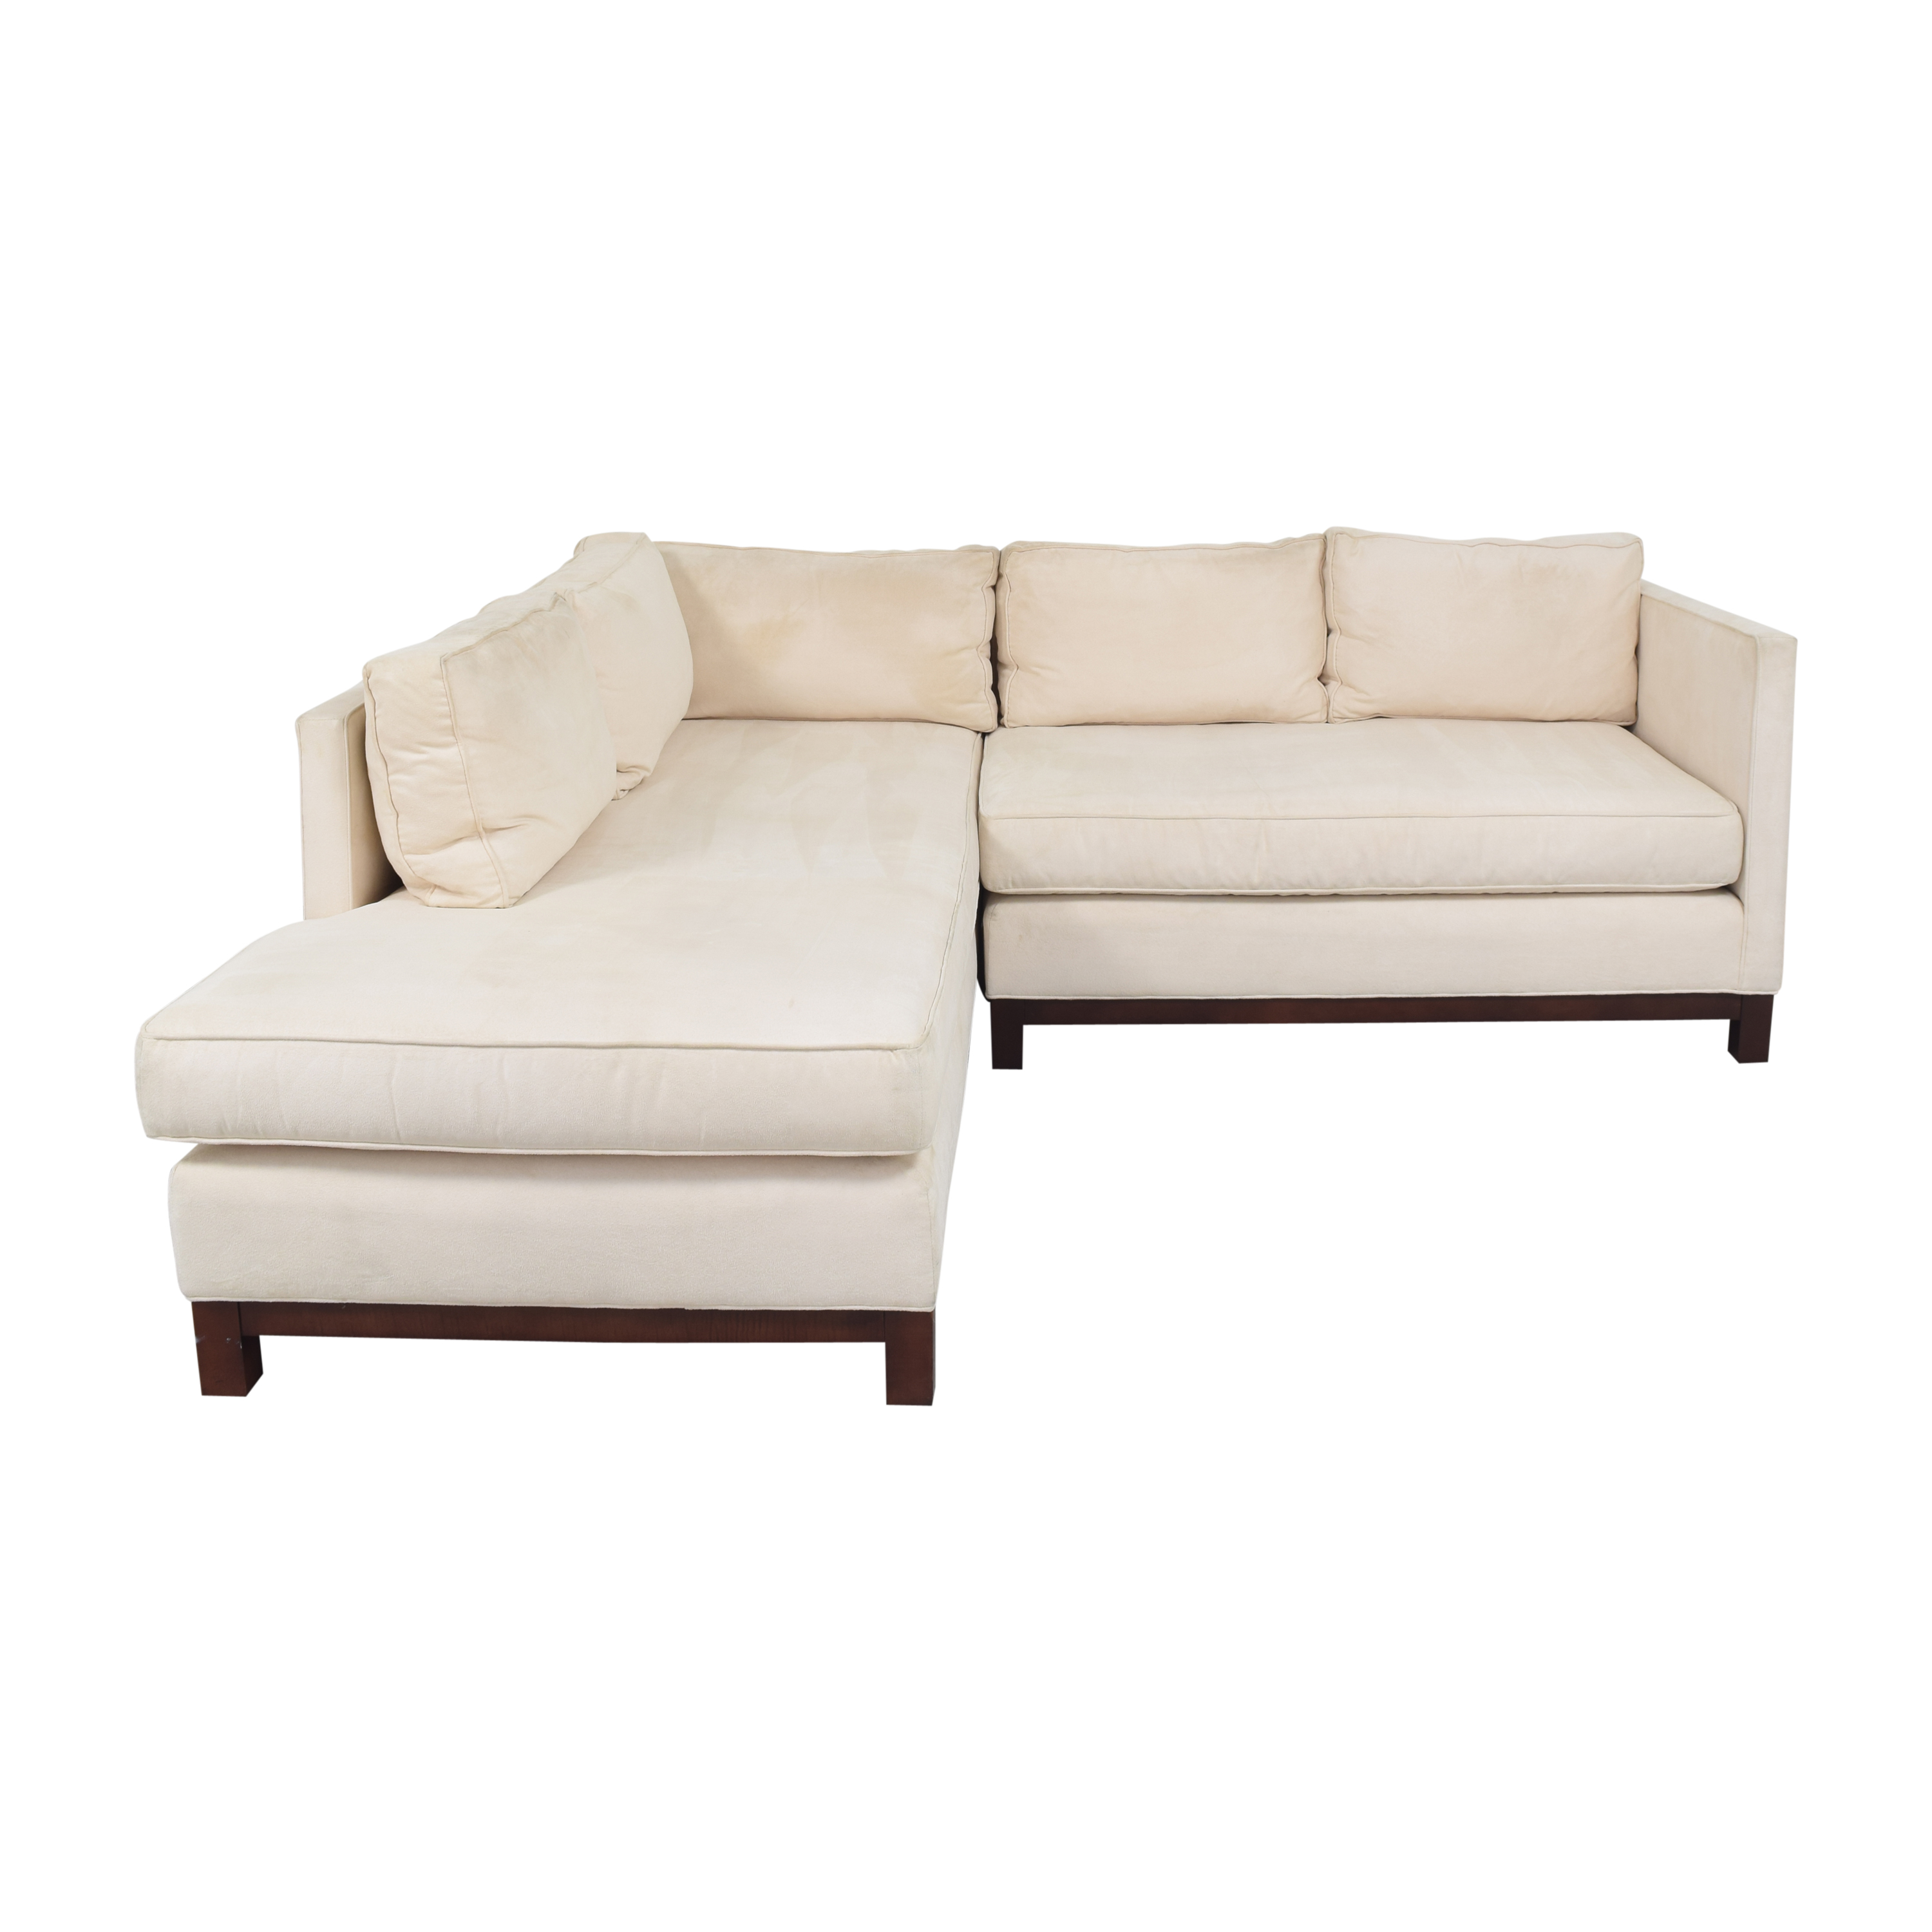 Mitchell Gold + Bob Williams Mitchell Gold + Bob Williams Clifton Chaise Sectional Sofa pa